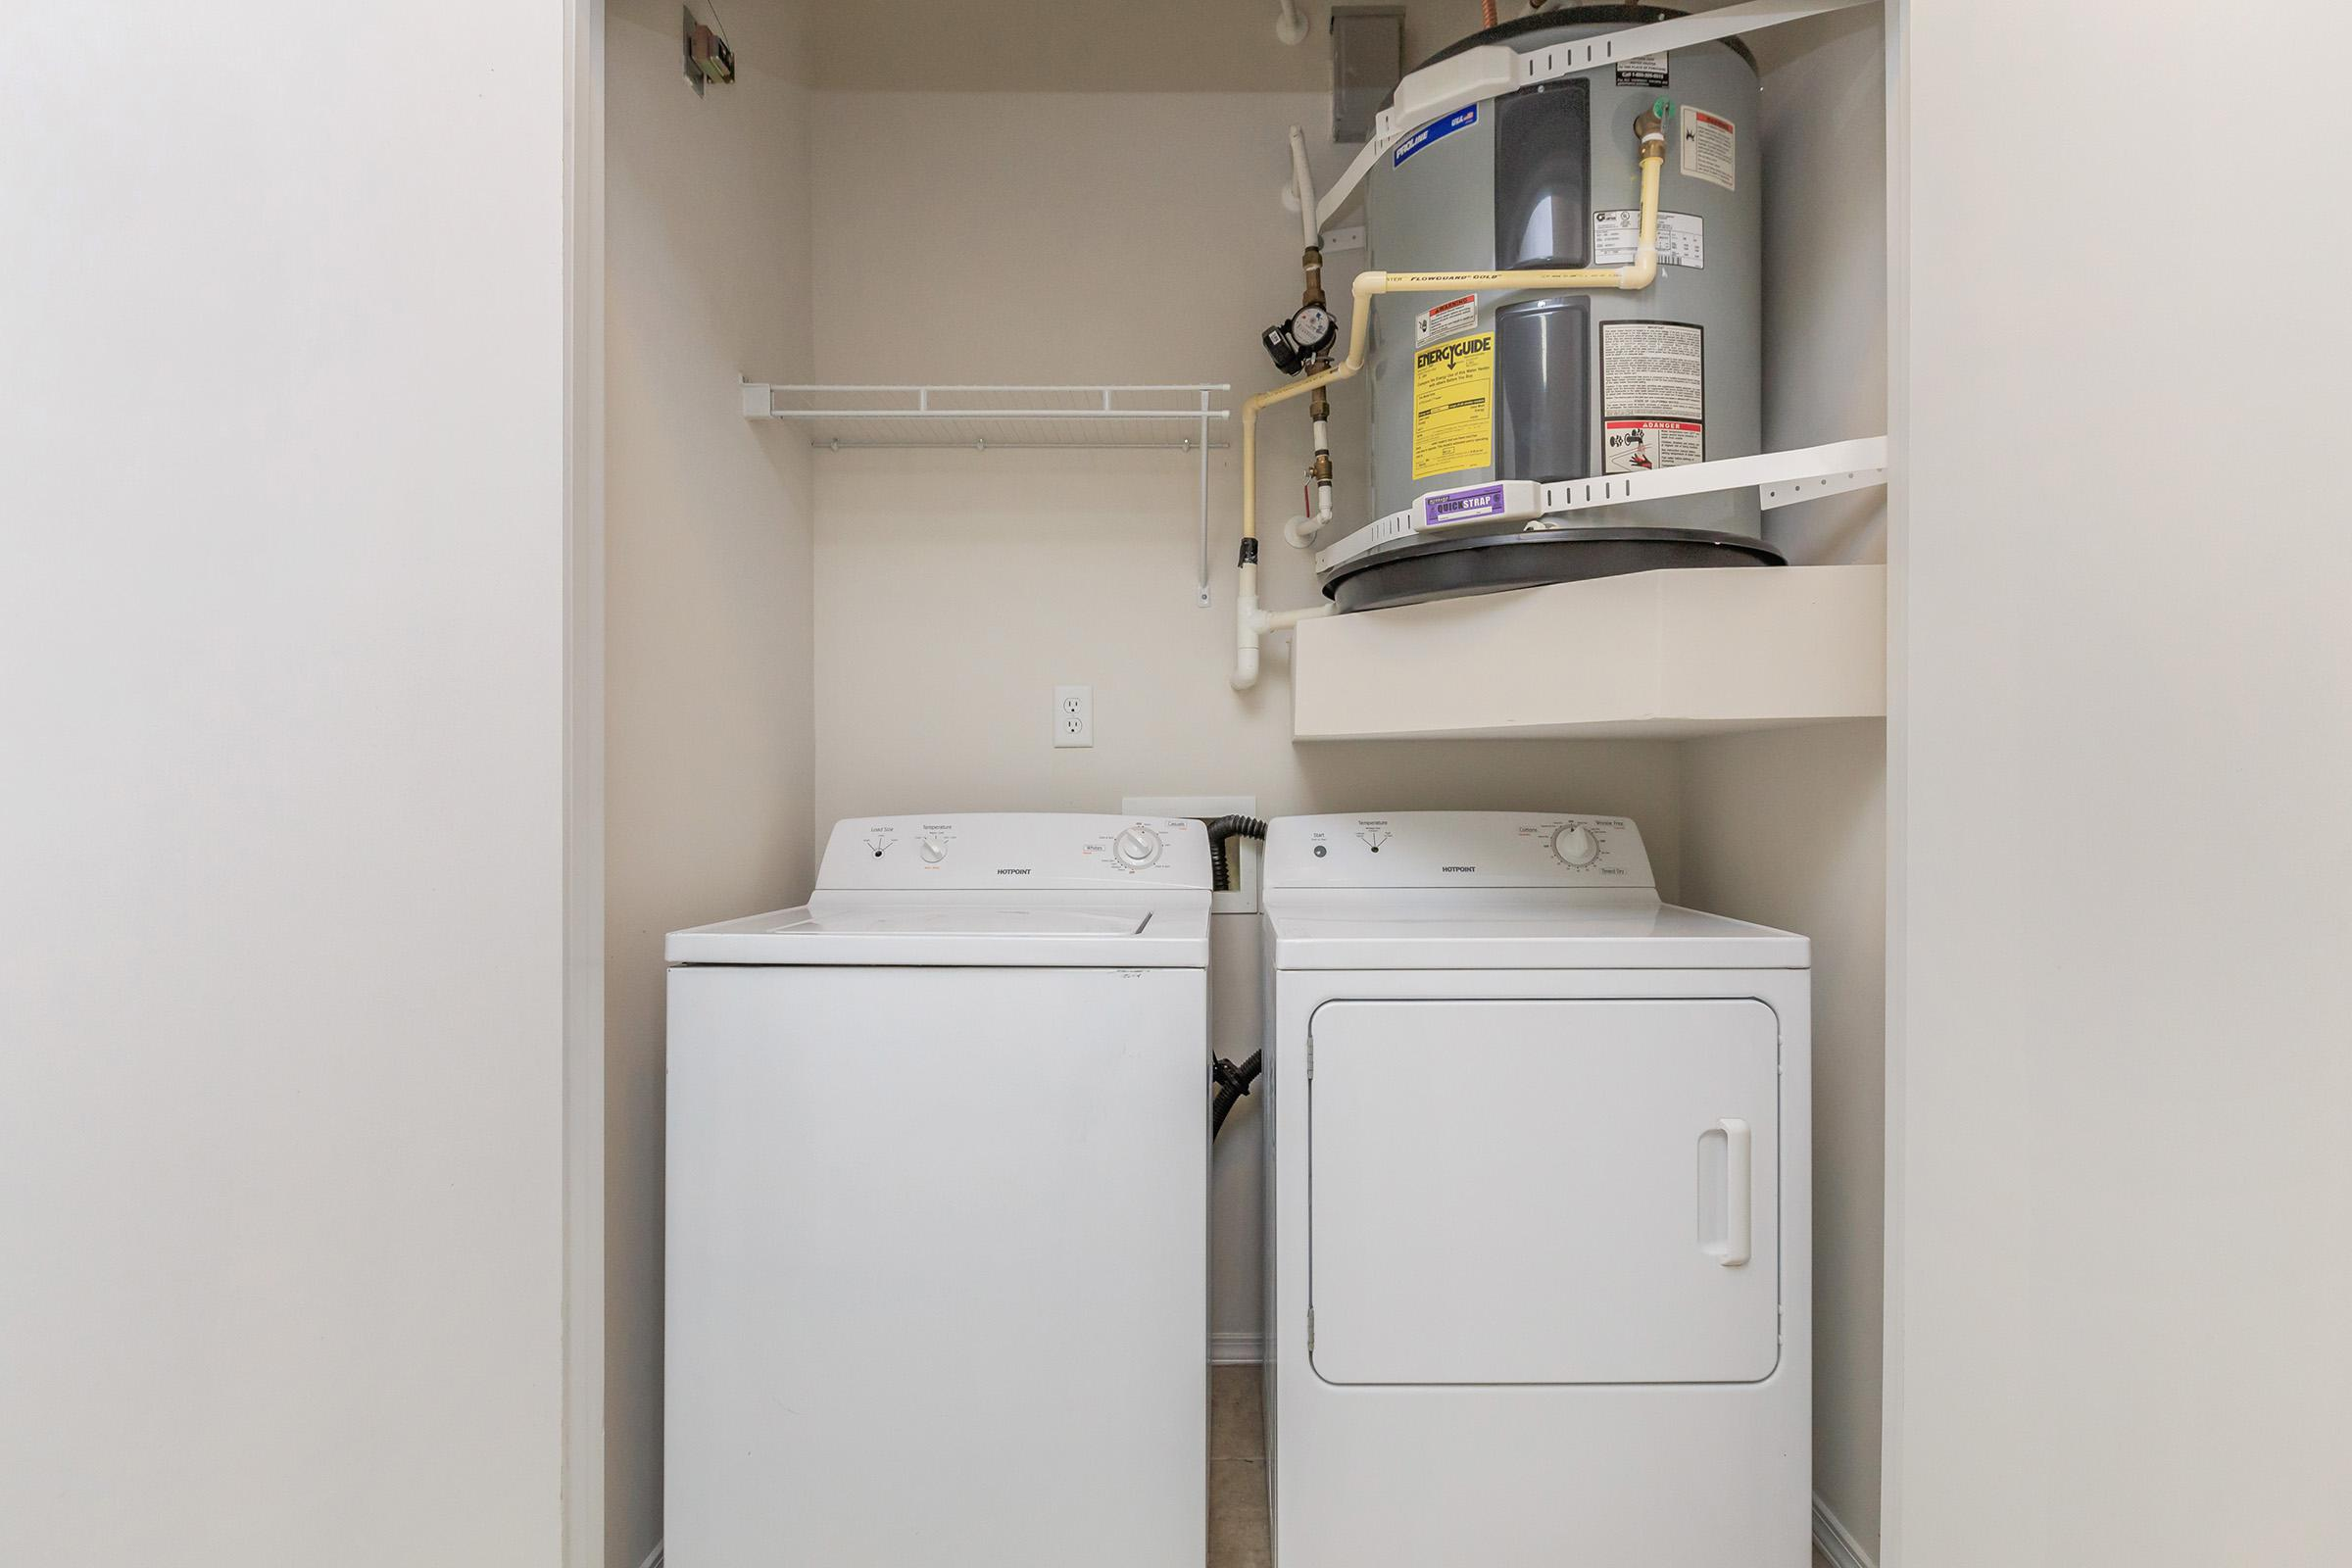 a white refrigerator freezer sitting in a room